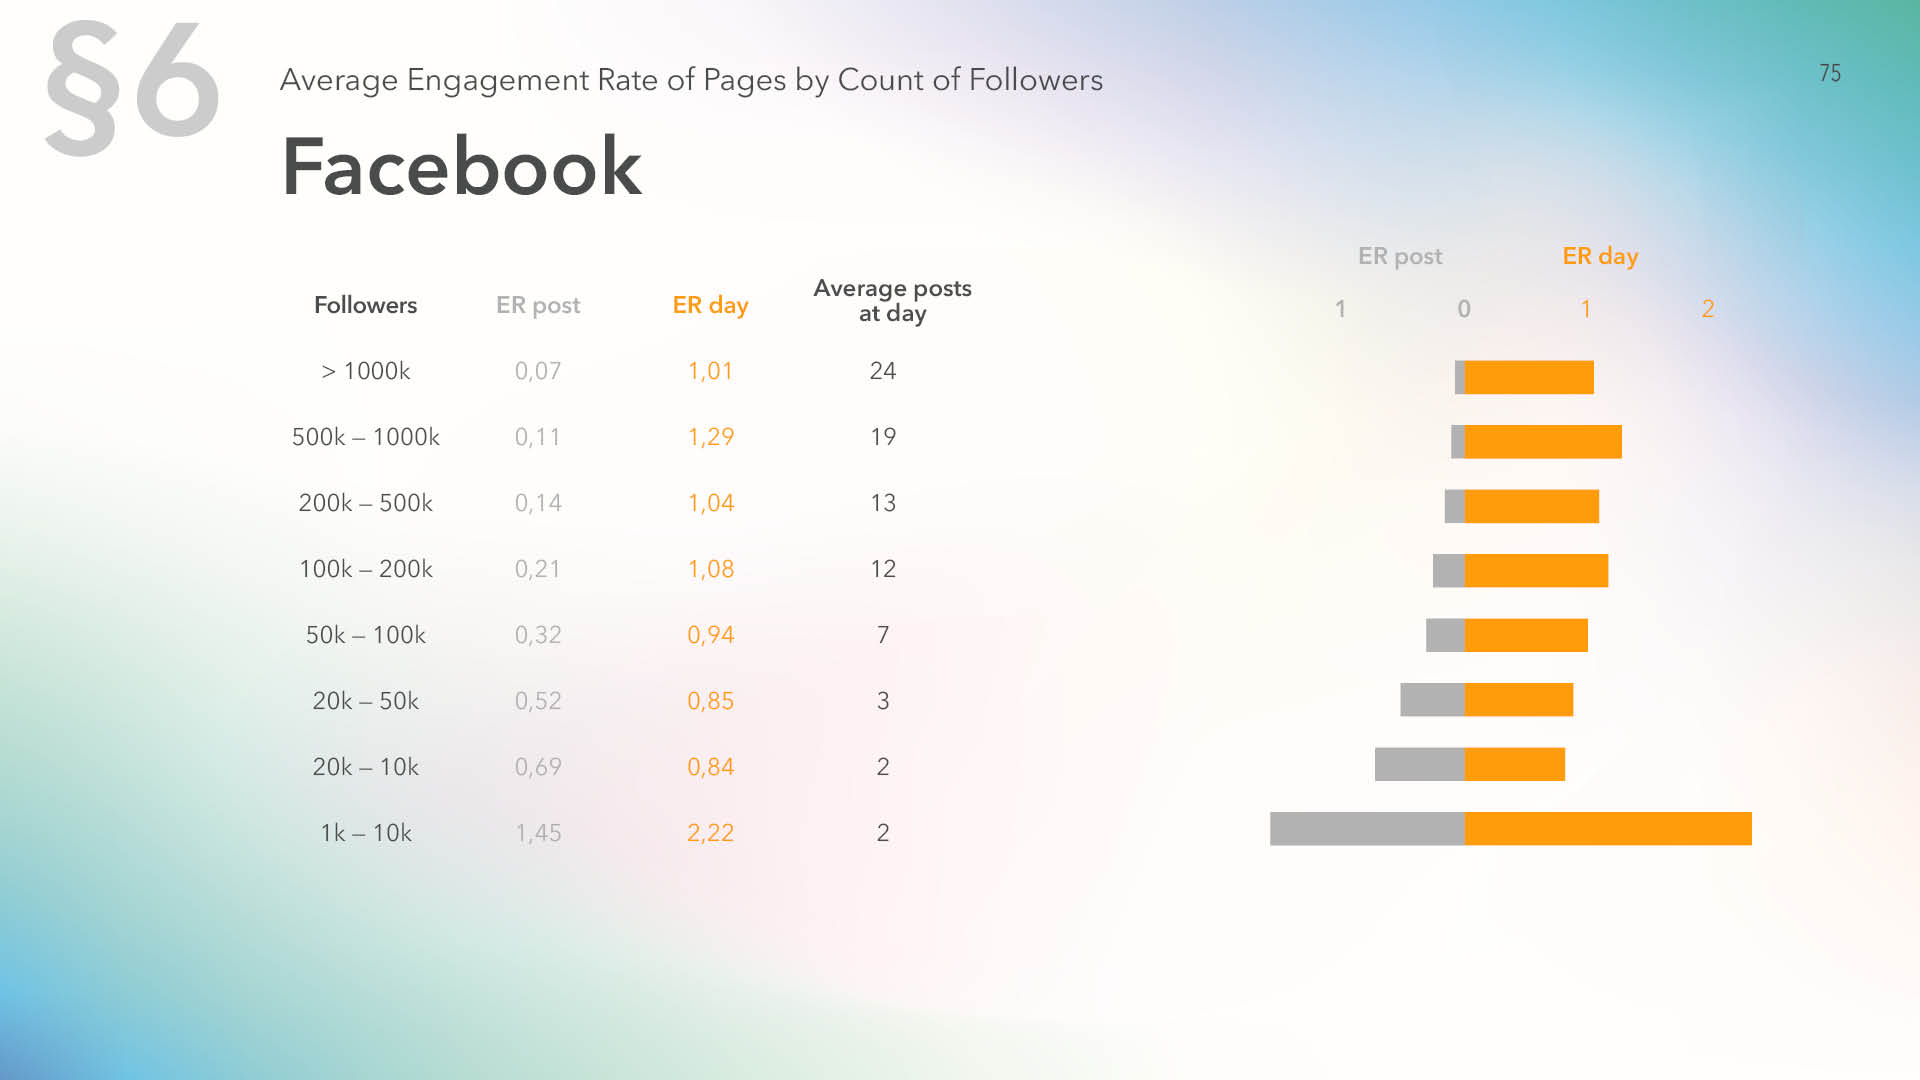 Average engagement rate of Facebook pages by count of followers